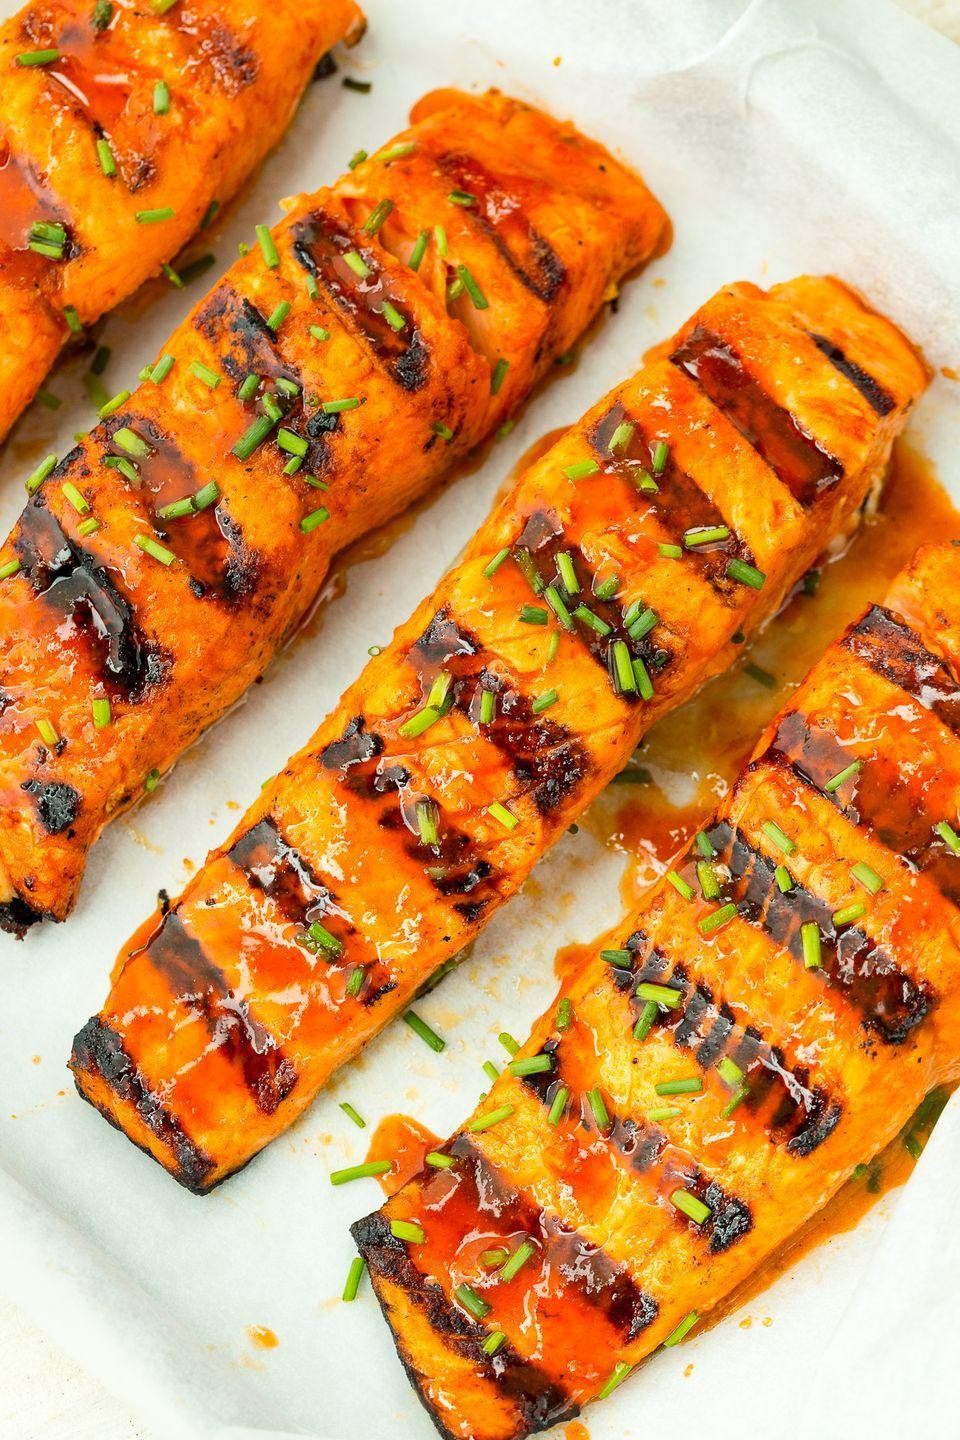 "<p>Salmon fillets get a kick from spicy Sriracha glaze.</p><p>Get the recipe from <a href=""https://www.delish.com/cooking/recipe-ideas/recipes/a47372/hot-shot-grilled-salmon-recipe/"" rel=""nofollow noopener"" target=""_blank"" data-ylk=""slk:Delish"" class=""link rapid-noclick-resp"">Delish</a>.</p>"